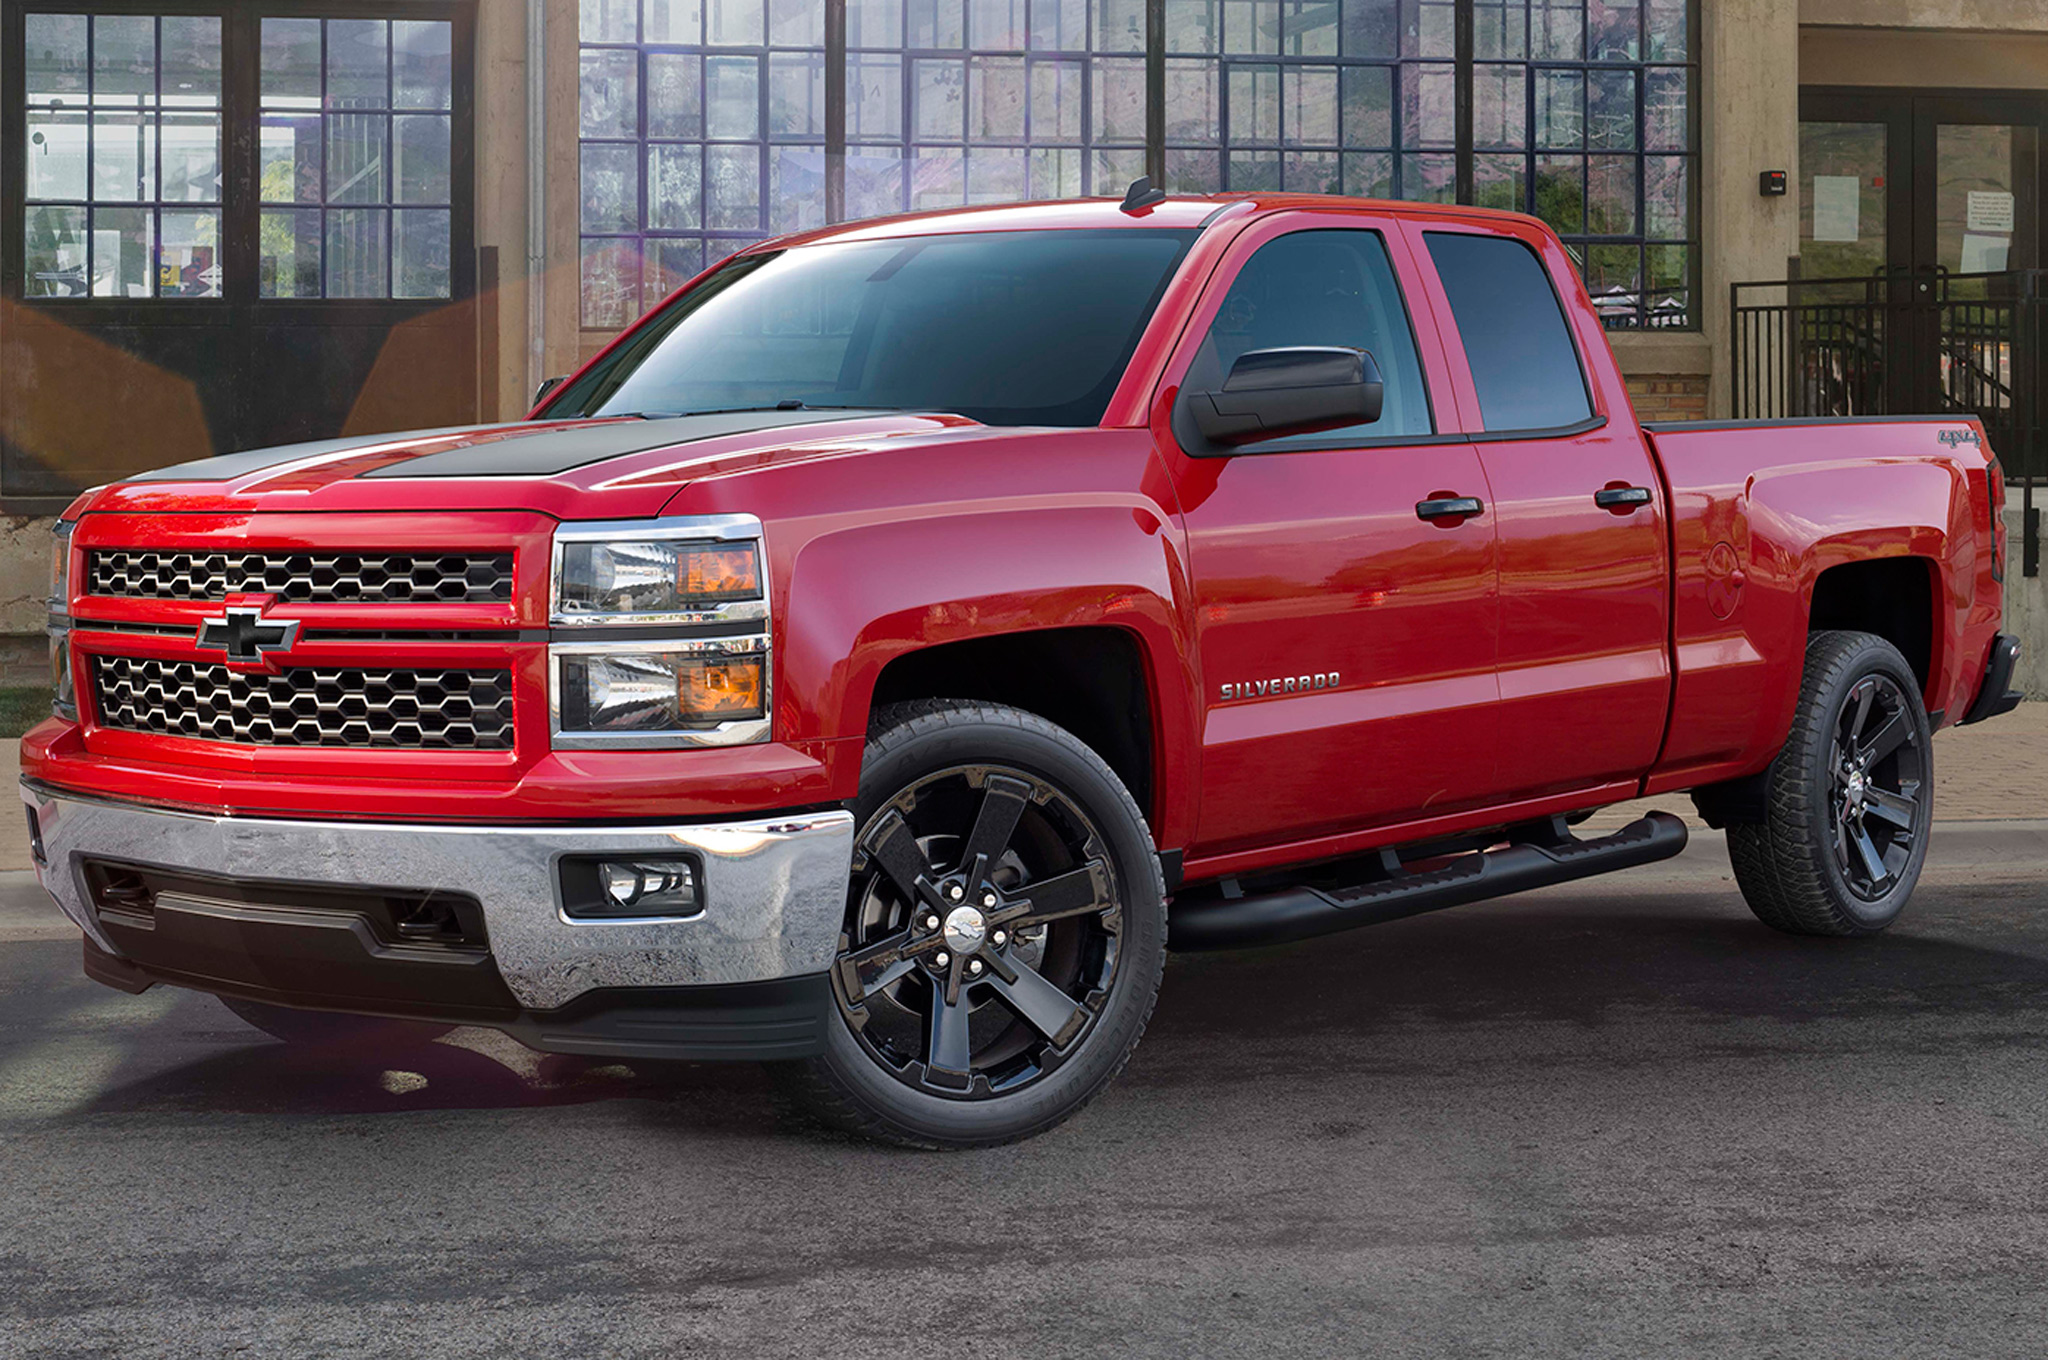 2019 Chevrolet Silverado Midnight Edition photo - 1